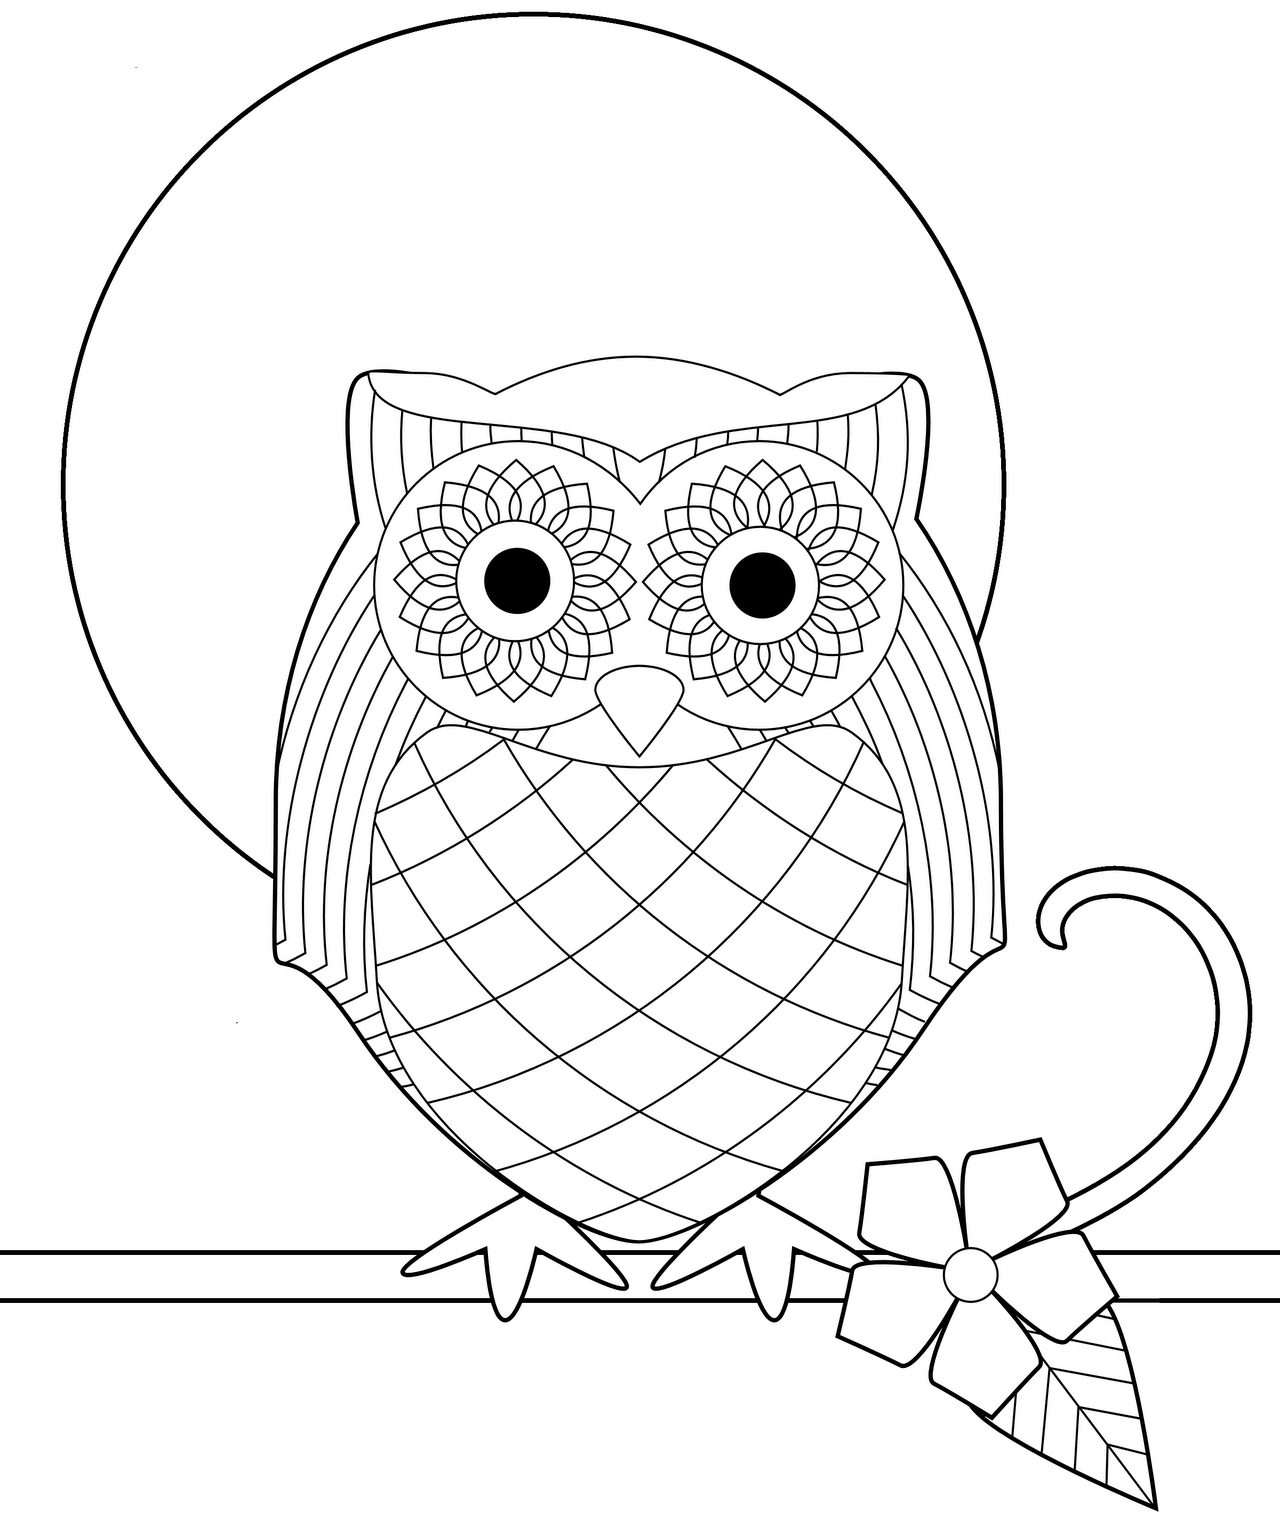 Whimsical Owl Coloring Pages Cartoon Of